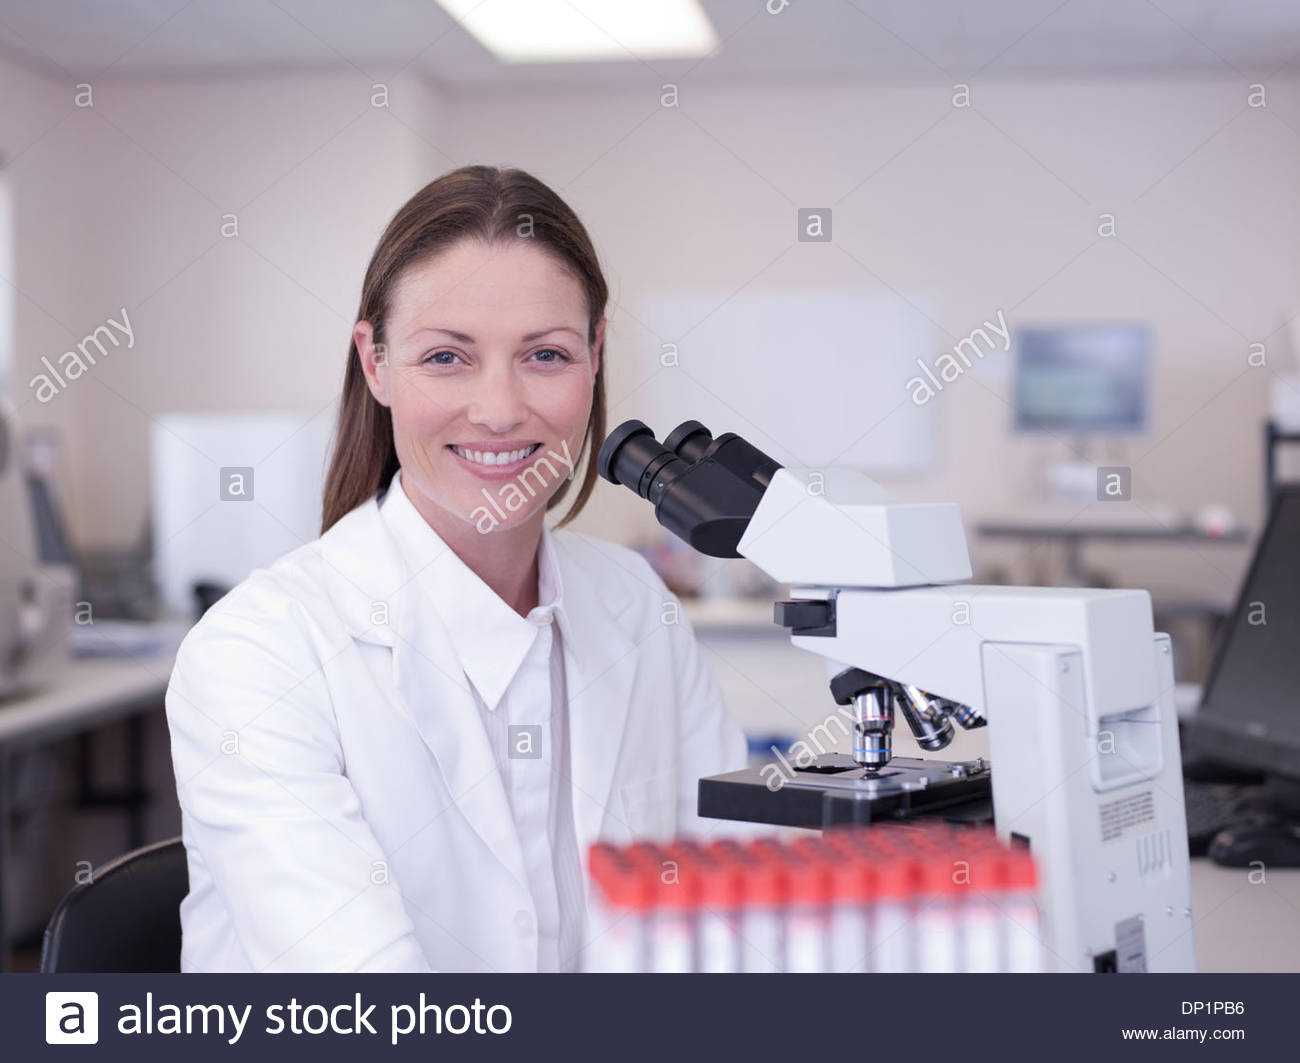 Portrait of scientist with microscope in laboratory - Stock Image